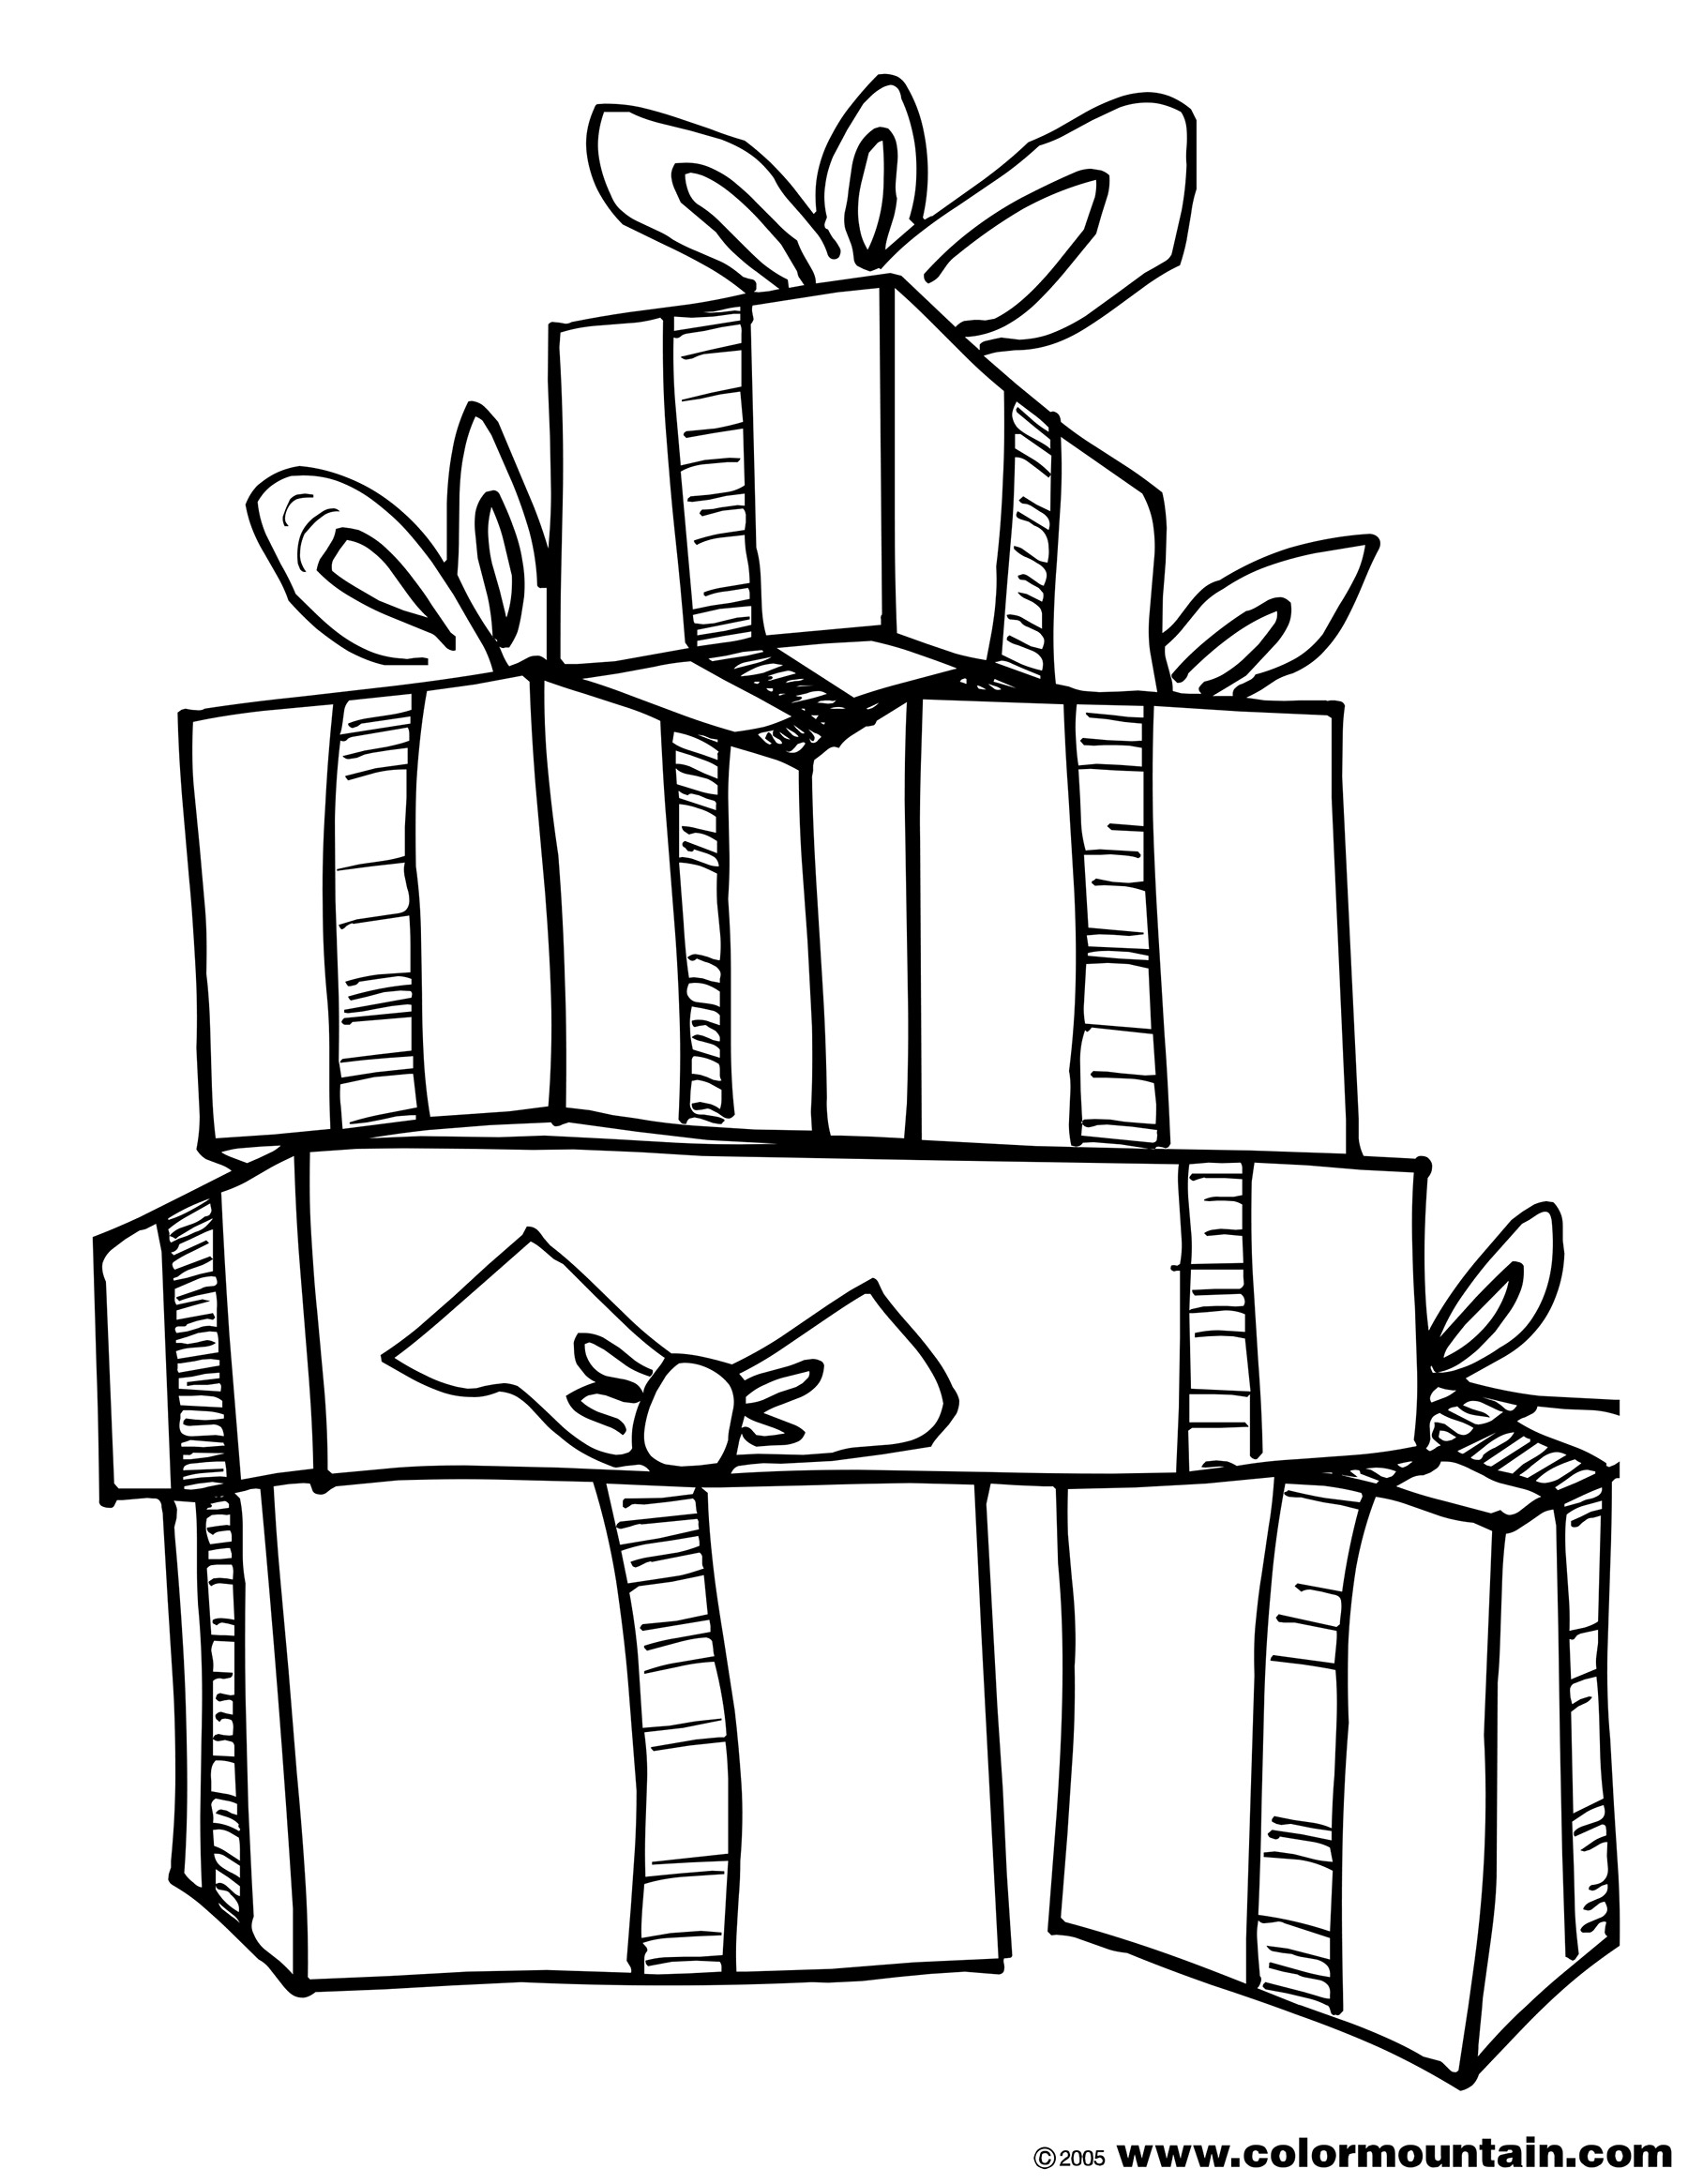 how to draw a christmas present christmas present drawing at getdrawings free download to how a draw present christmas